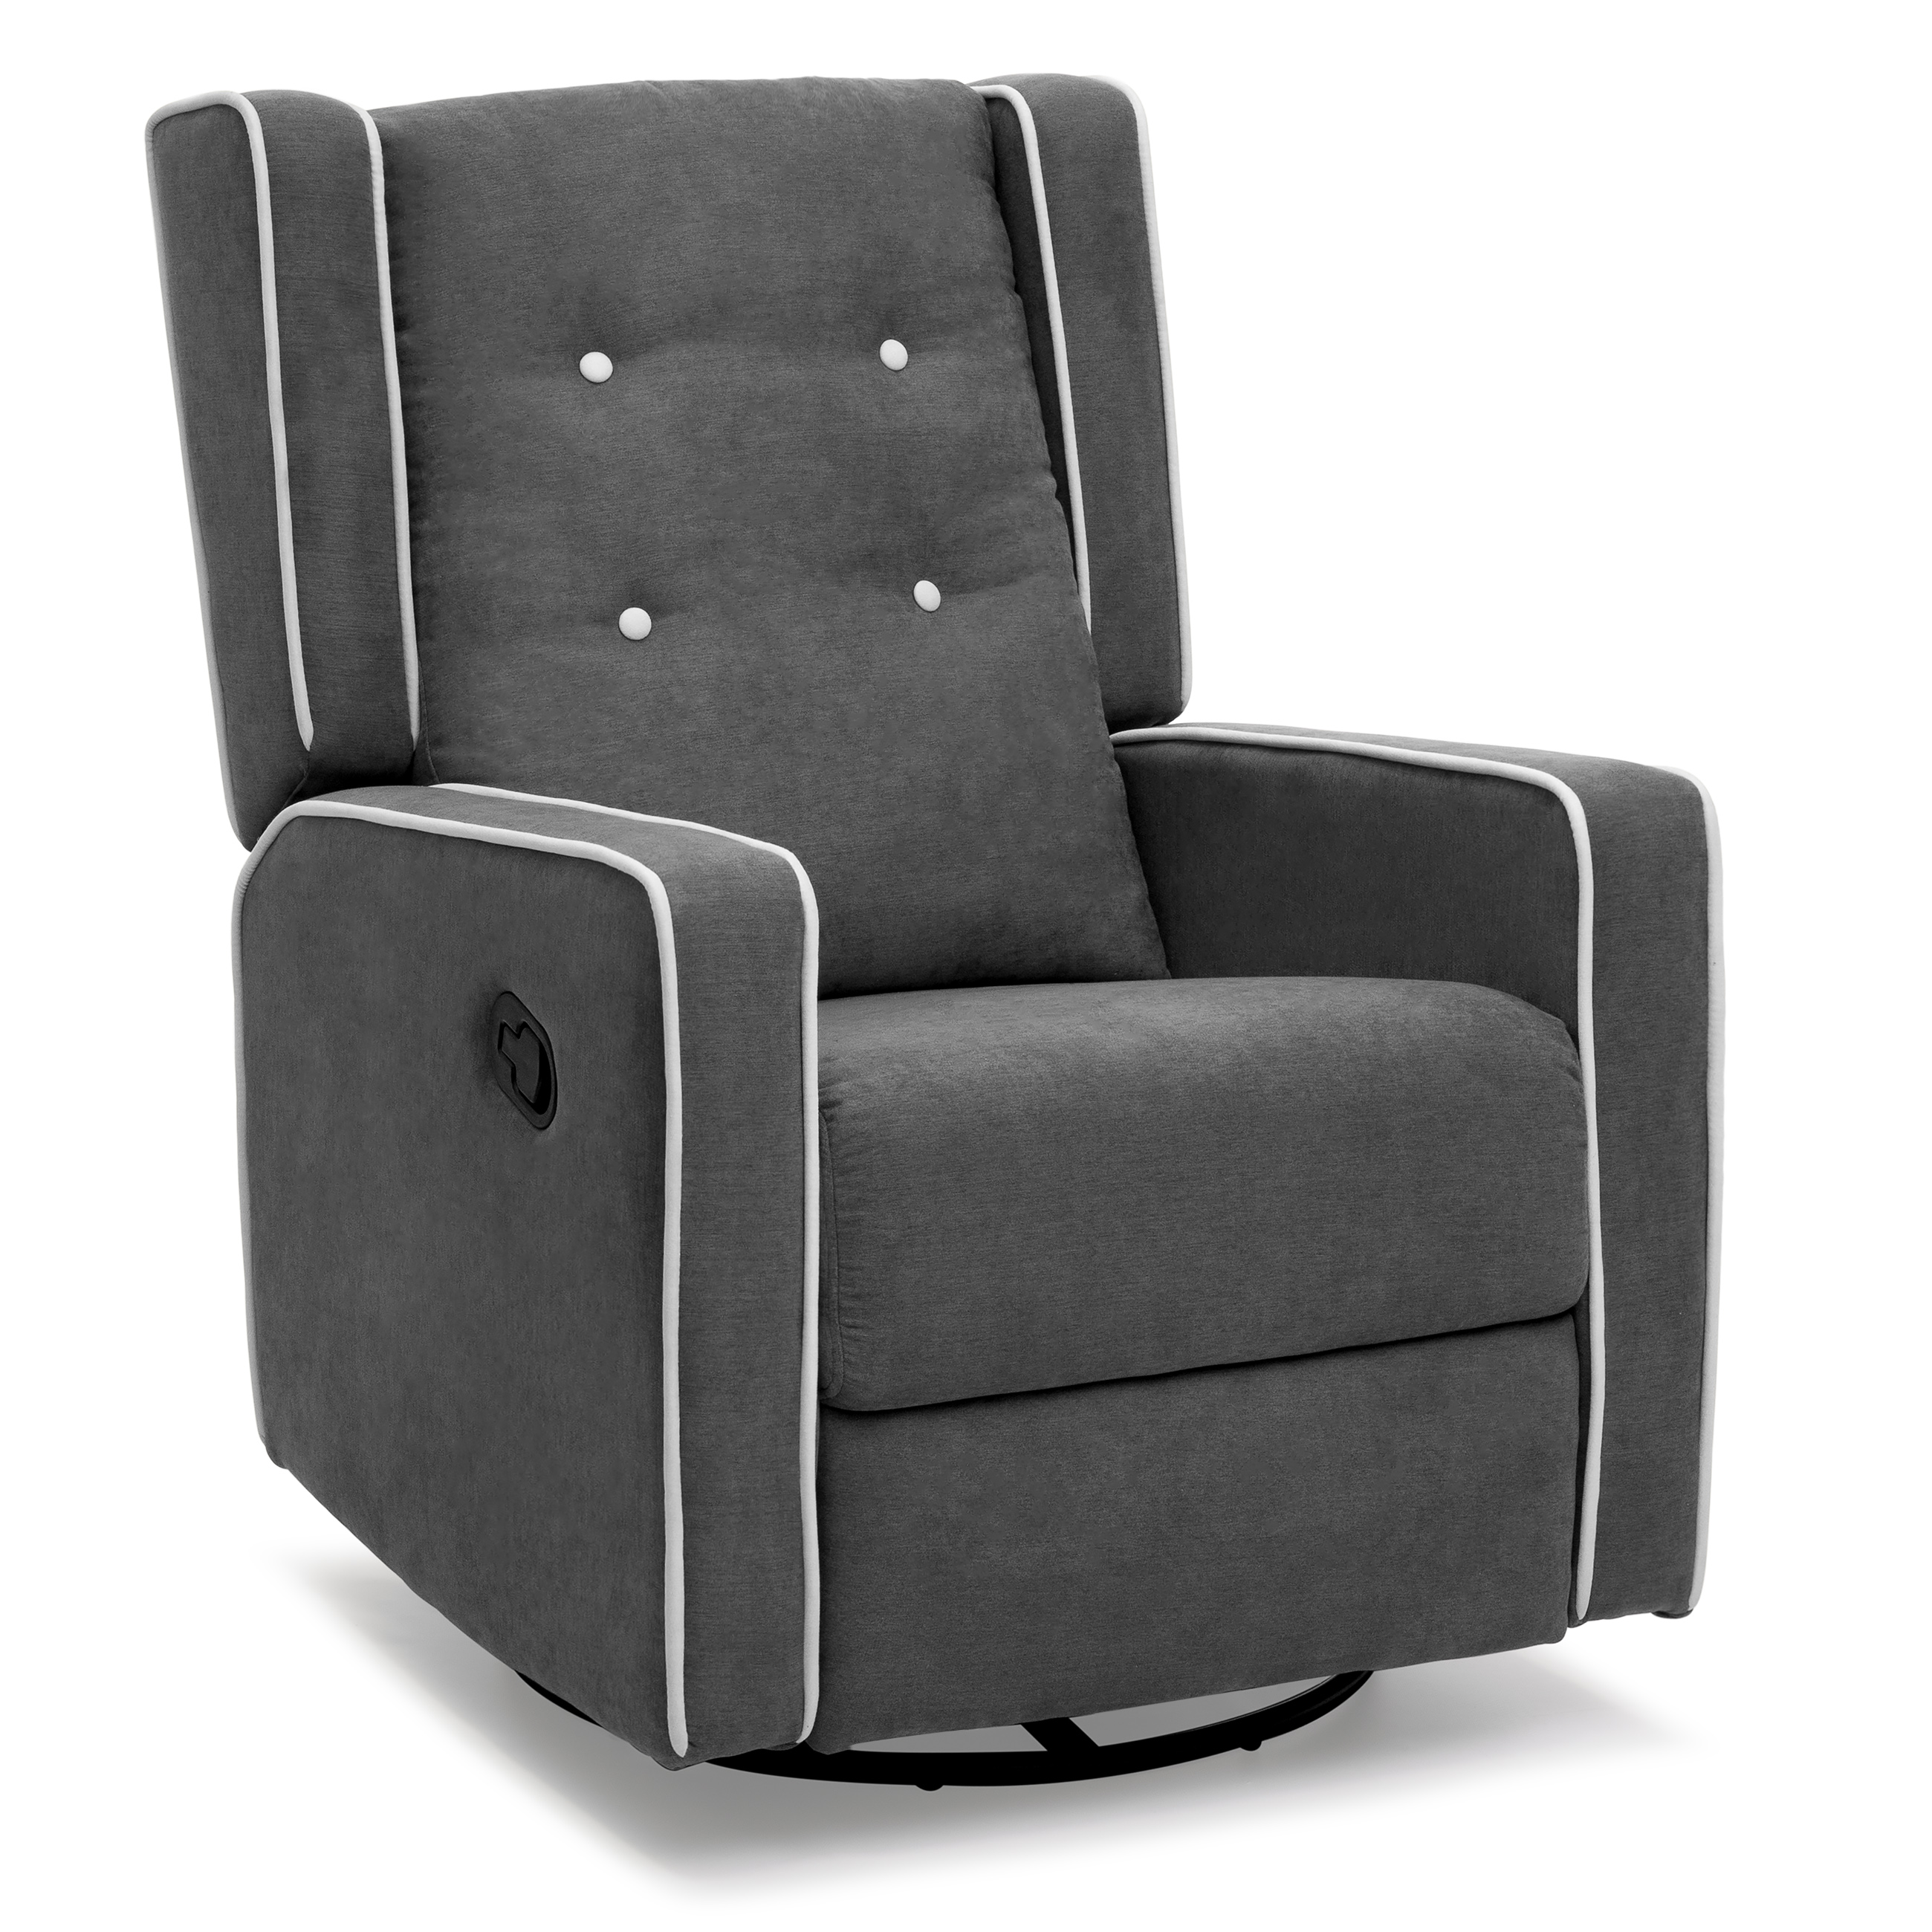 Best Choice Products Microfiber Tufted Upholstered Swivel Gliding Recliner - Gray